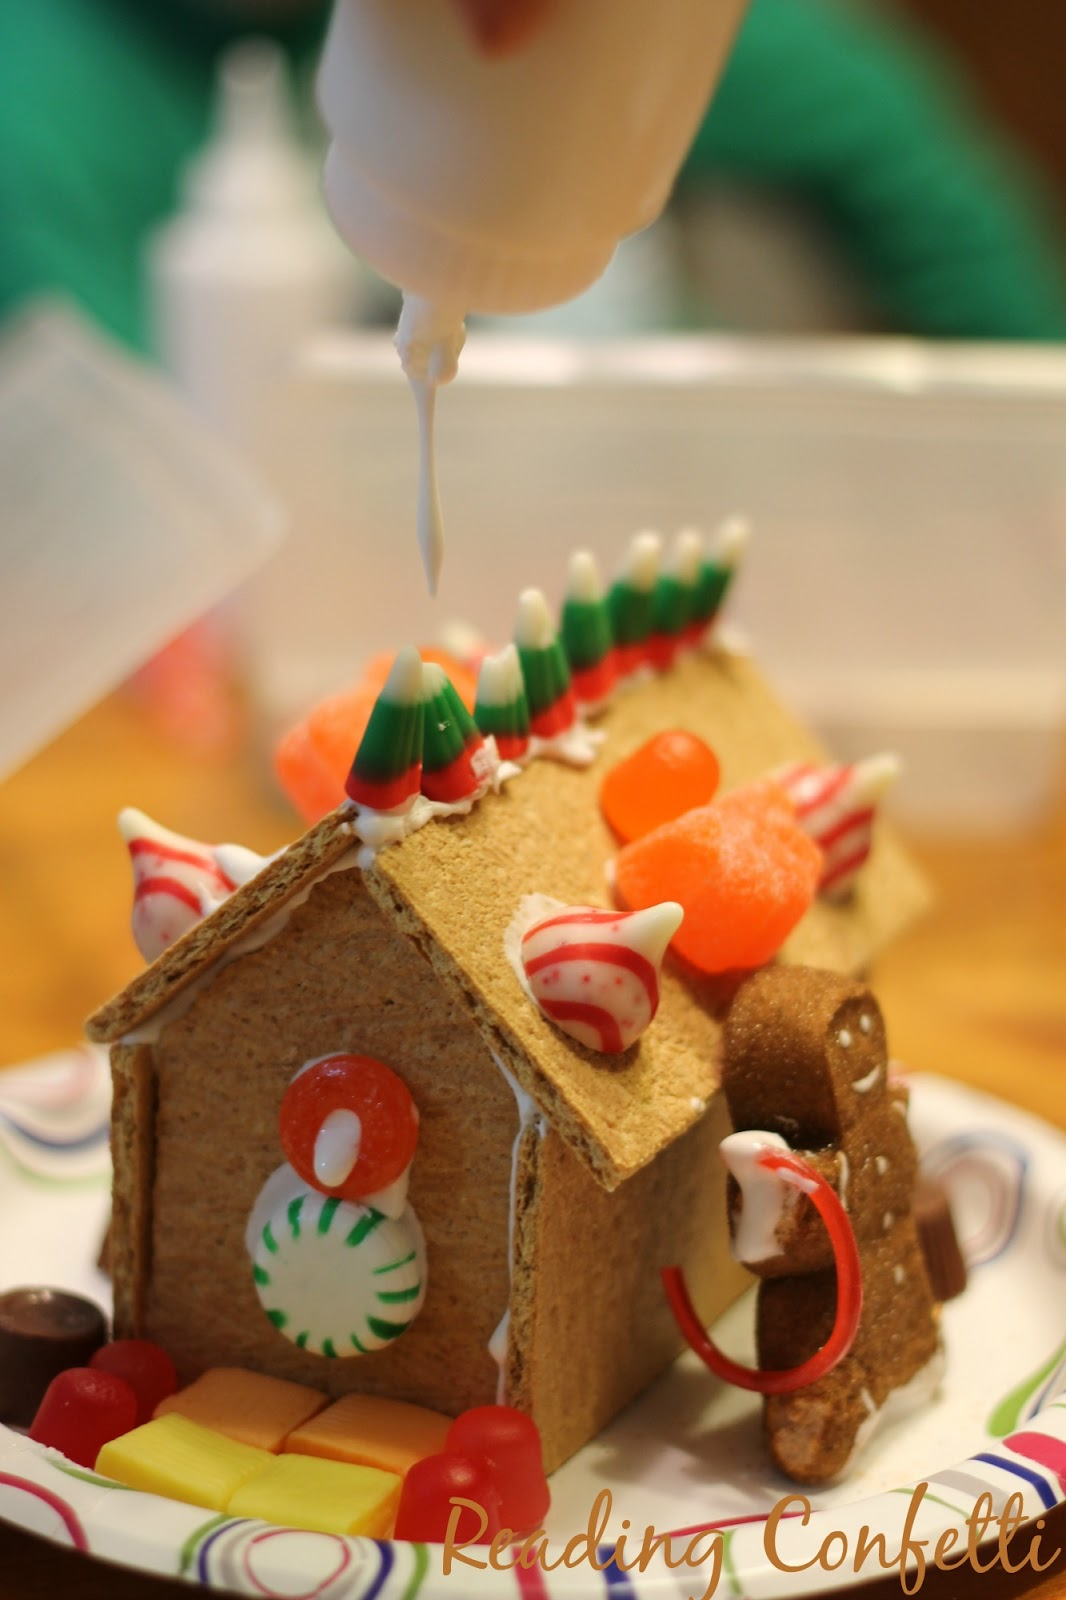 Graham Cracker Gingerbread Houses Reading Confetti